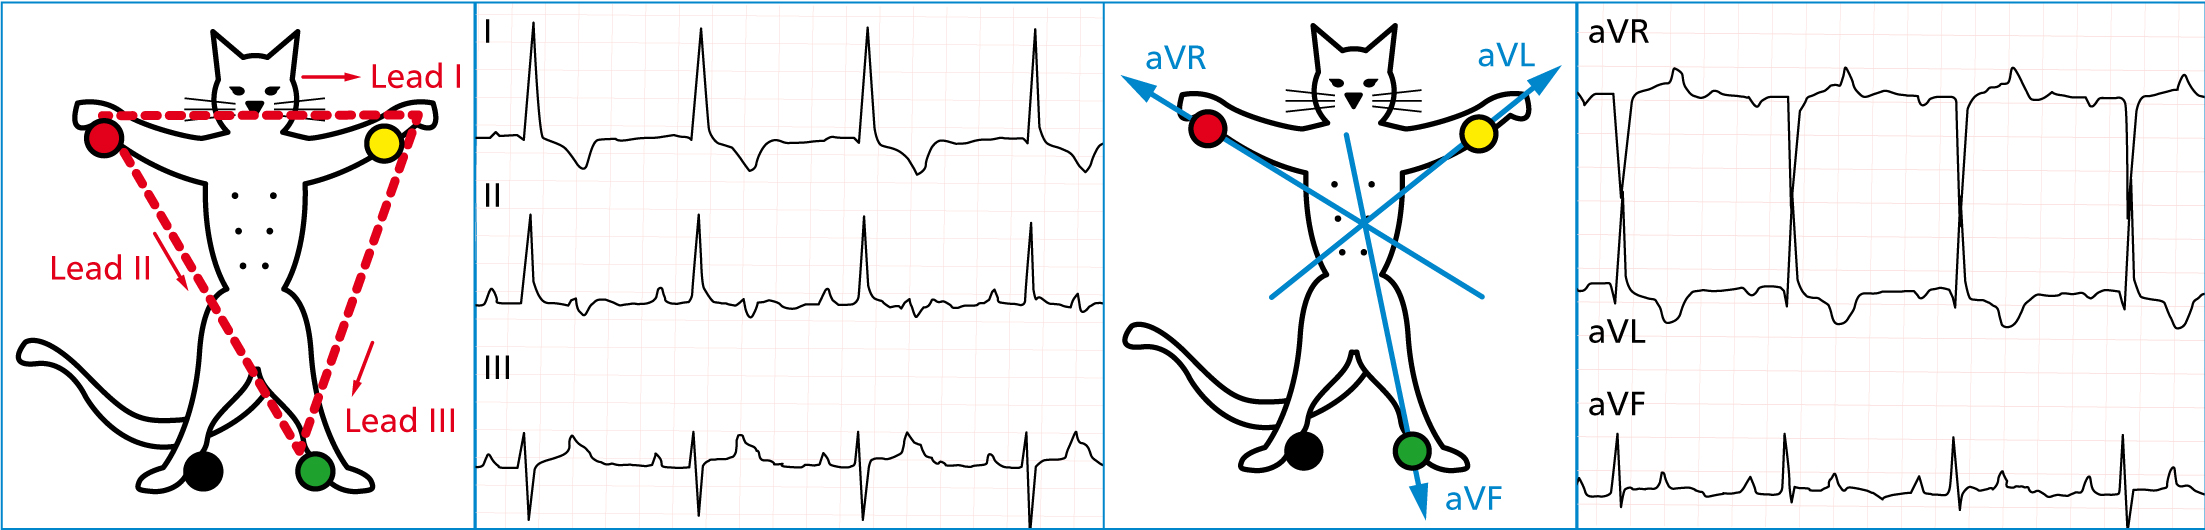 How Ecg Monitoring Contributes To Patient Care The Veterinary Nurse